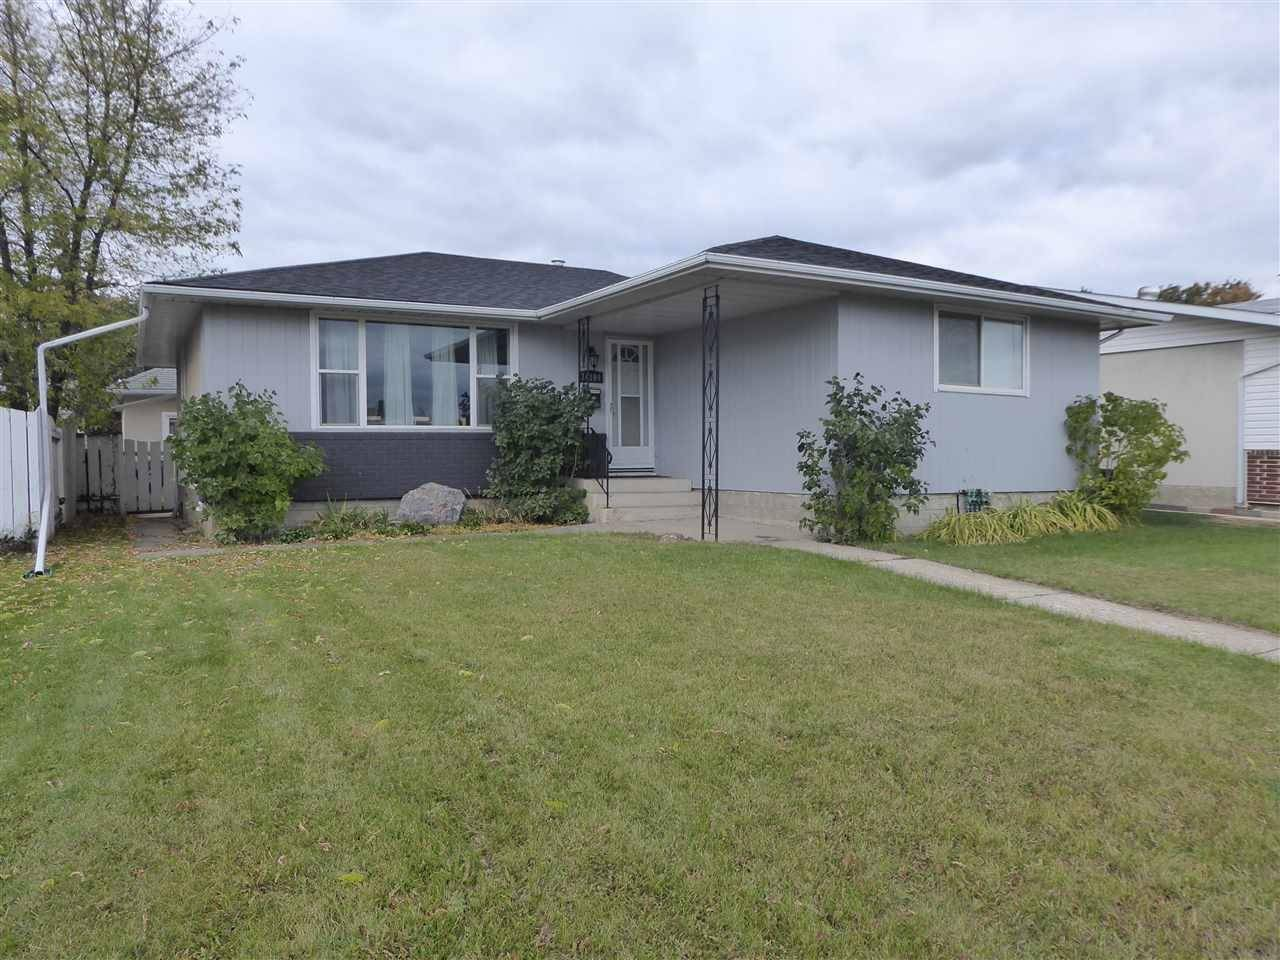 House for sale at 14104 71 St Nw Edmonton Alberta - MLS: E4177021